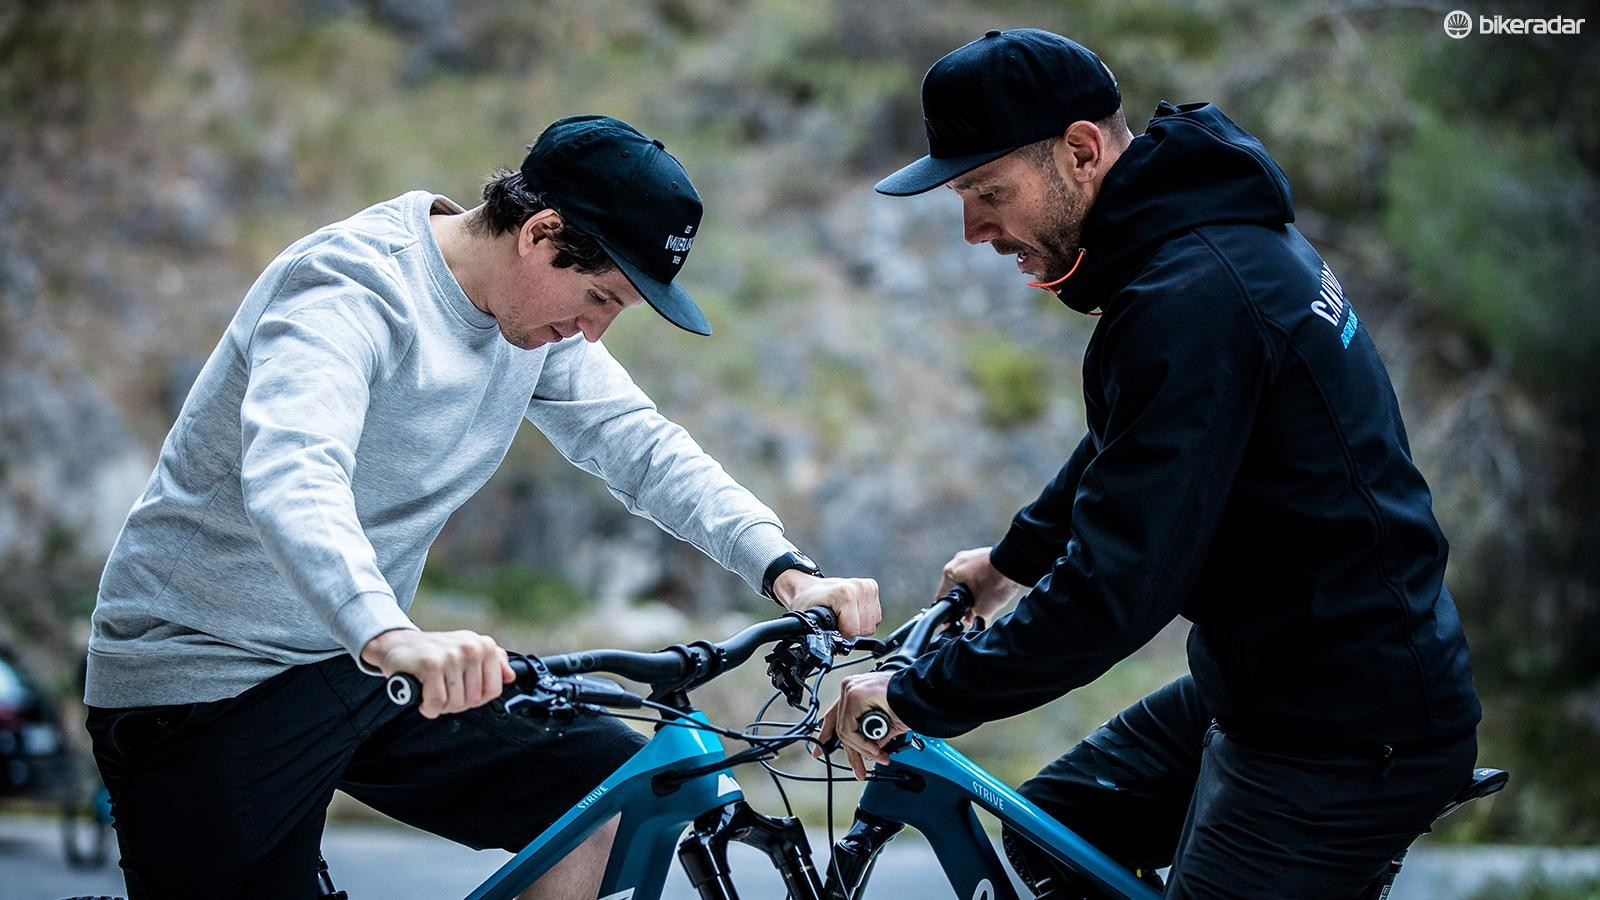 Getting some top setup tips from former downhill world champion and Canyon Factory Racing team principal Fabien Barel